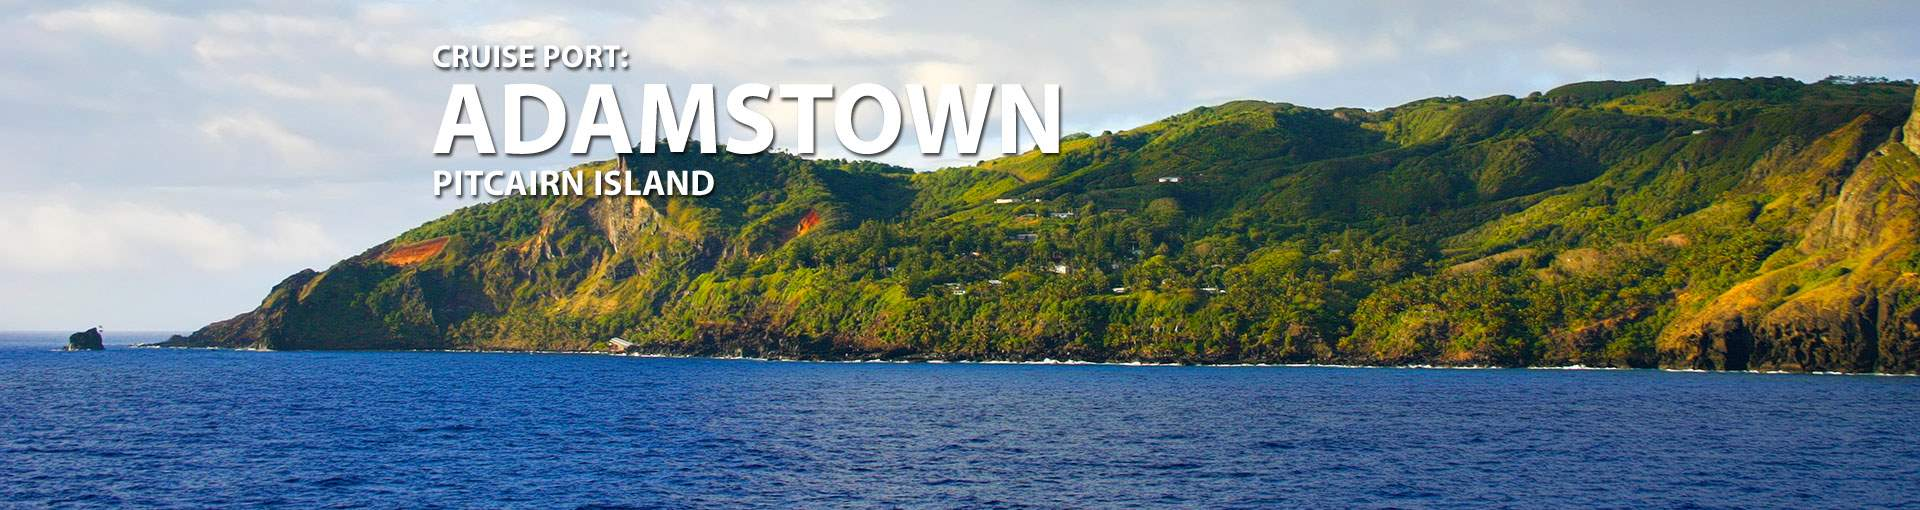 Cruises to Adamstown, Pitcairn Island